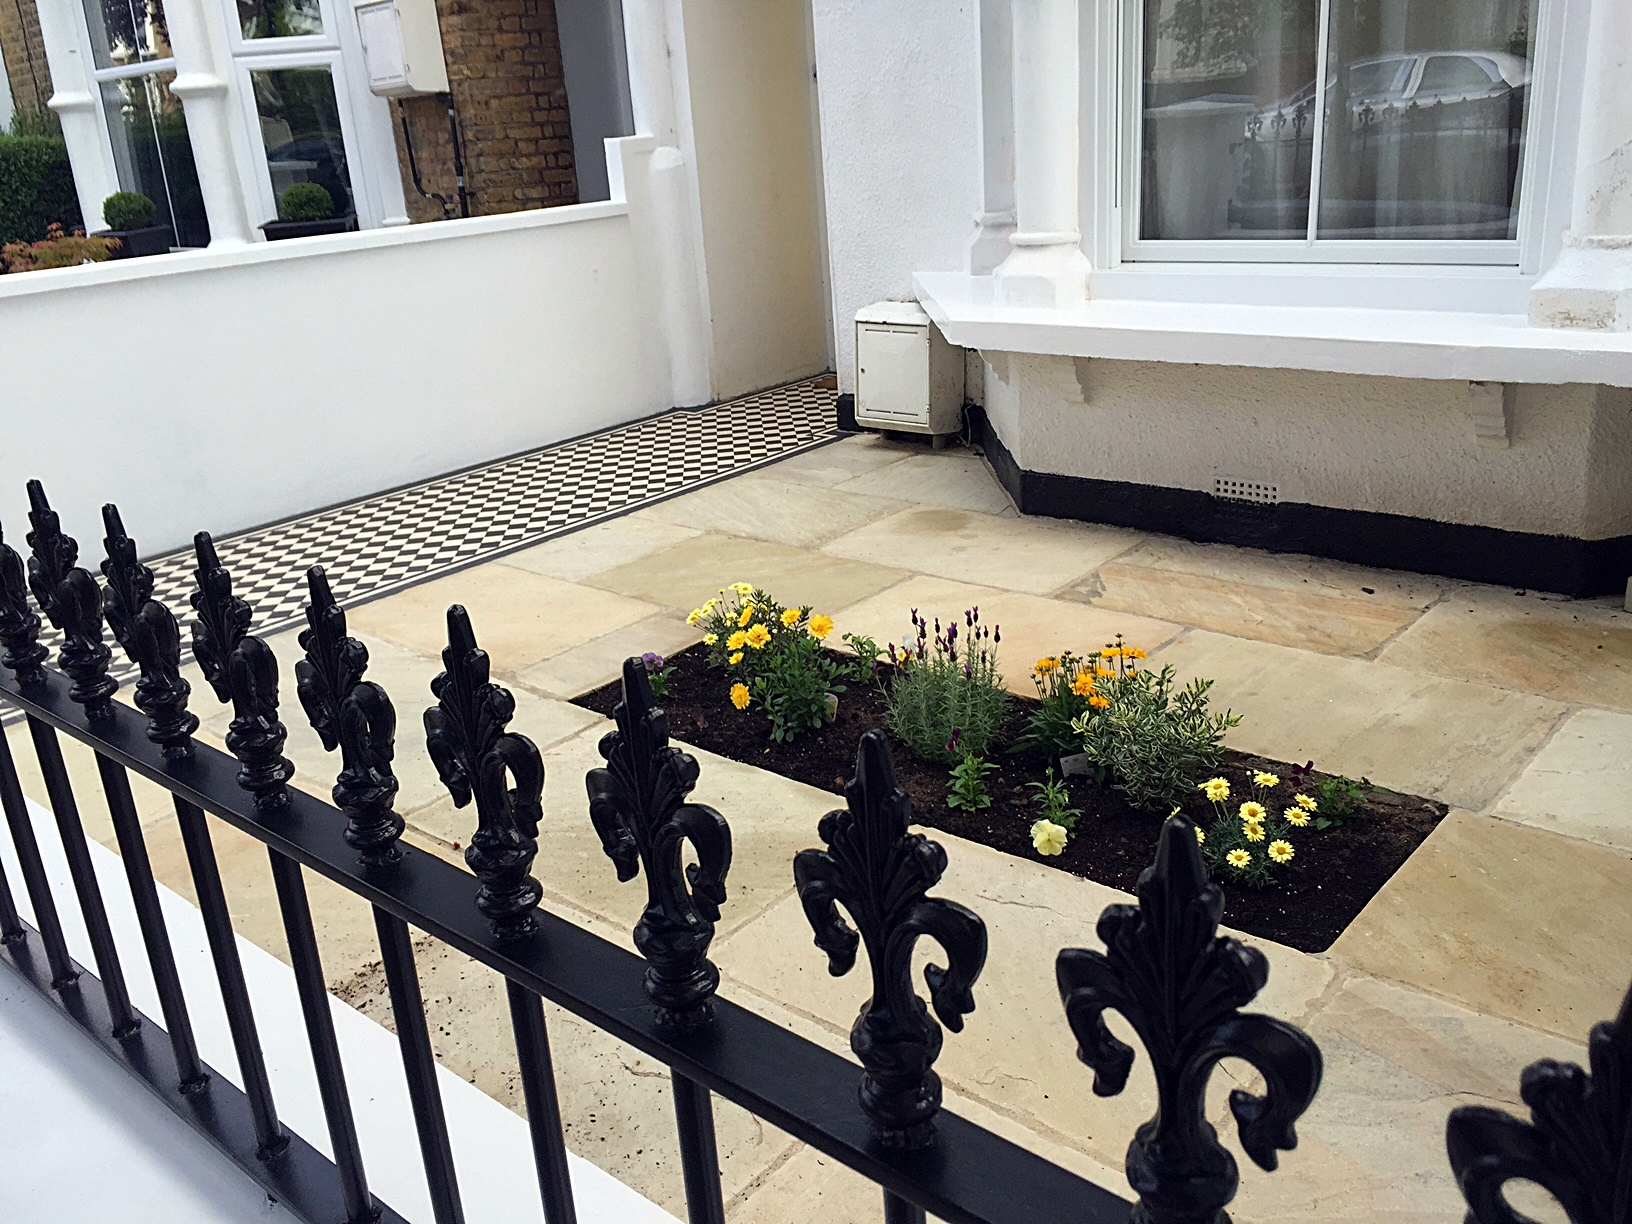 Metal gate rails white render walls path paving tiles London stone Balham Wandsworth Battersea Clapham